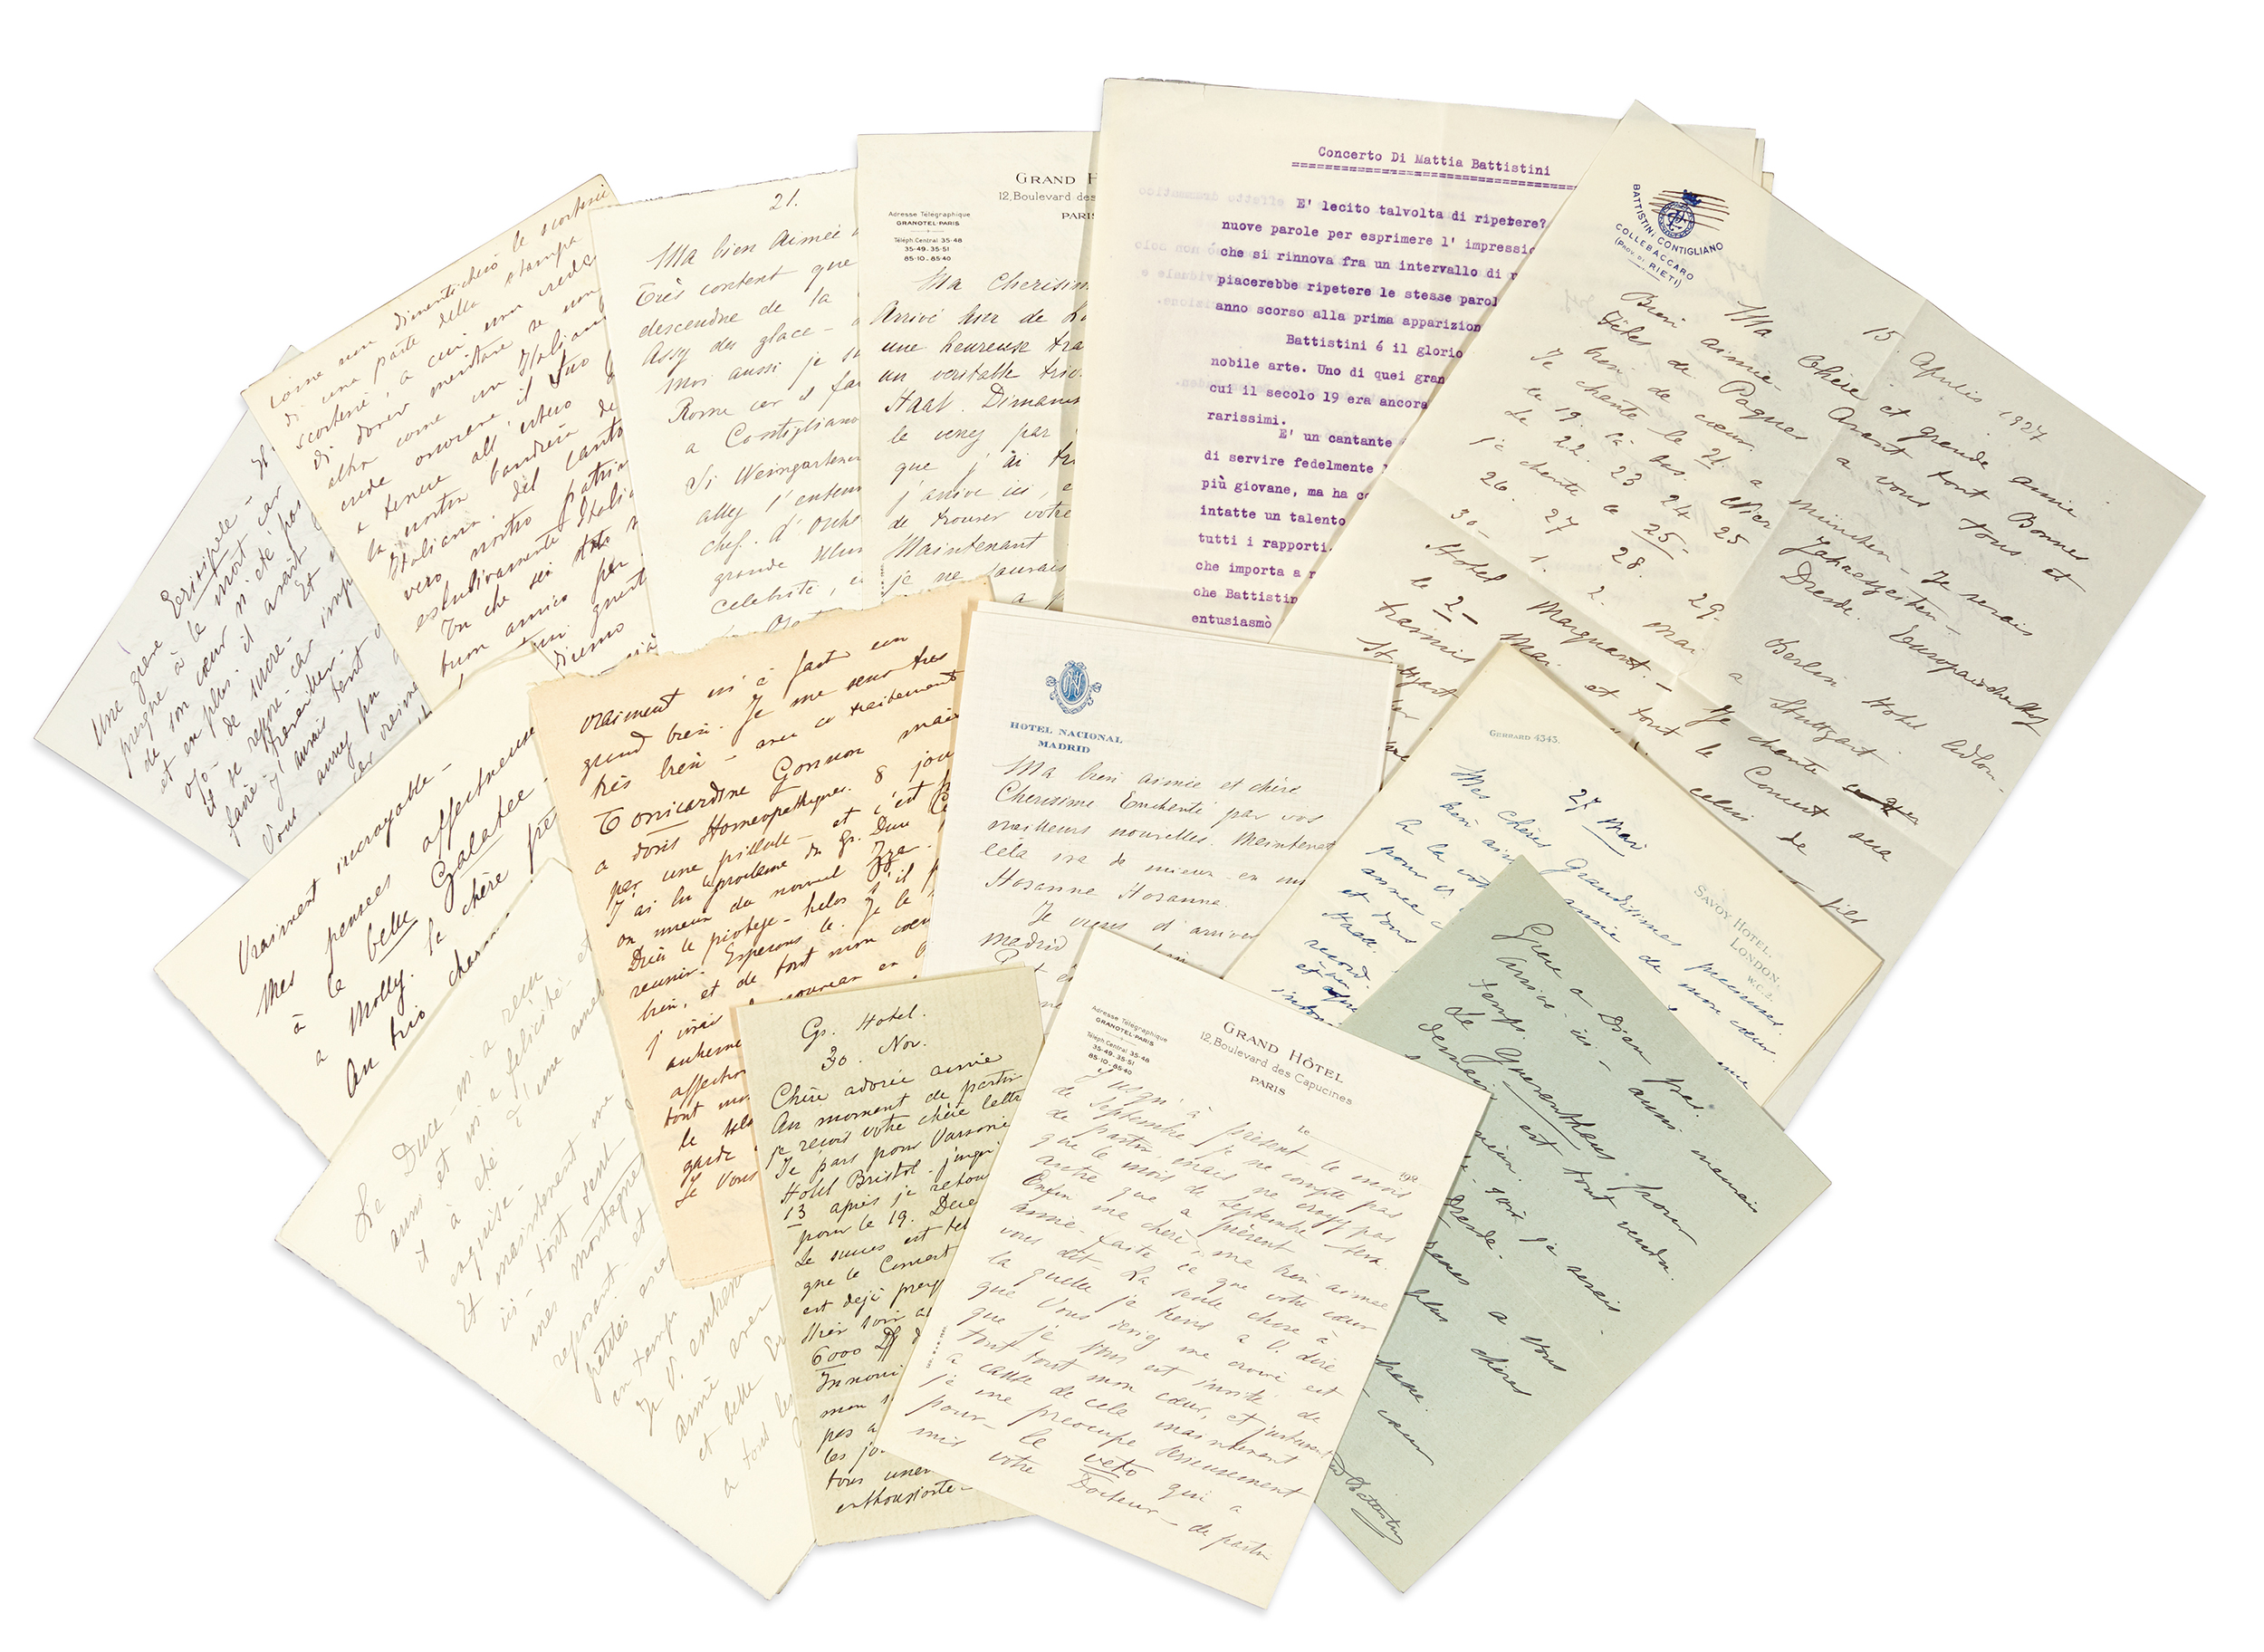 M. Battistini. Series of 22 autograph letters signed, mainly 1924-1927